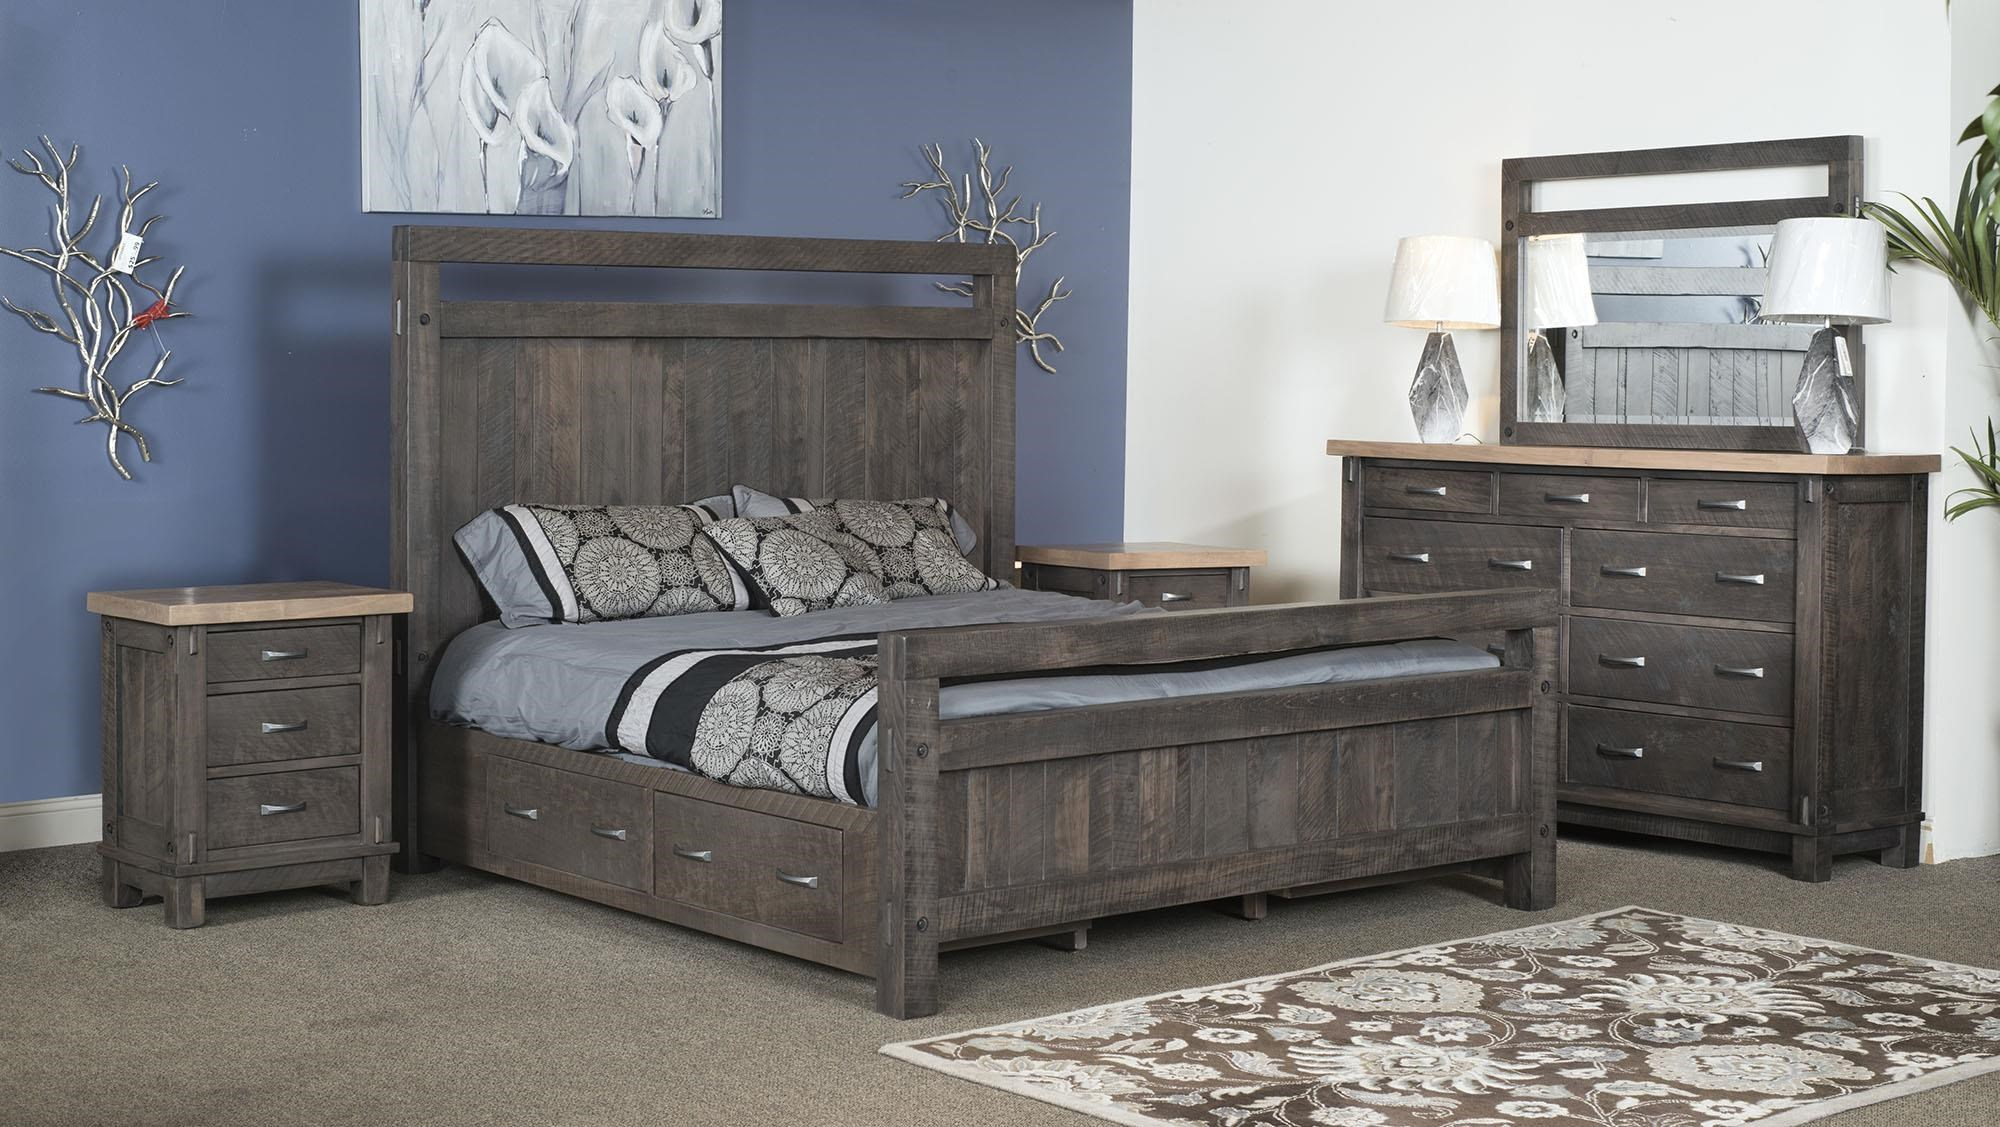 Timber Bedroom Timber Bedroom Group by Wayside Custom Furniture at Wayside Furniture